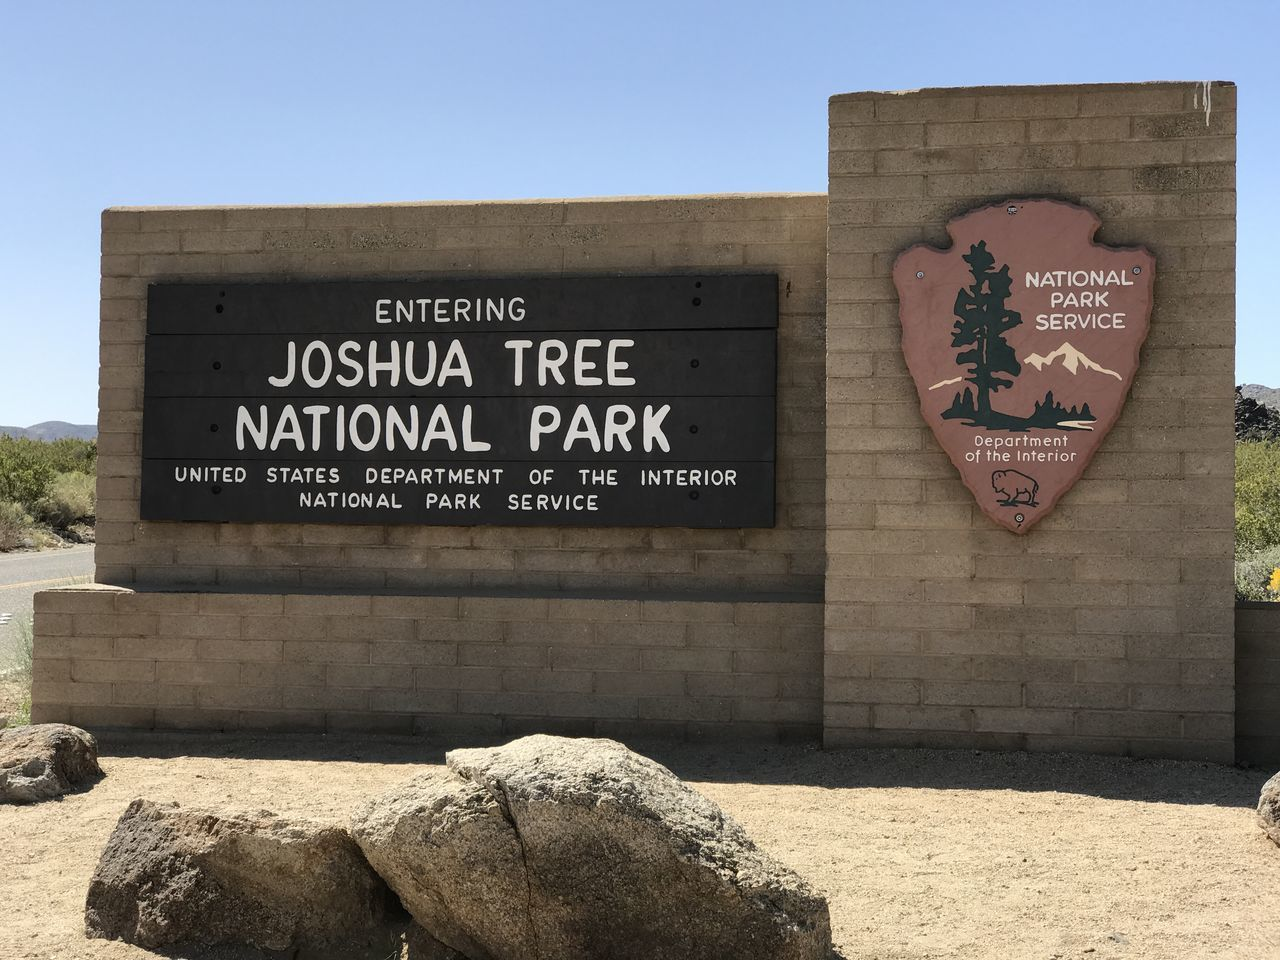 ©Amy Boyle Photography Architecture Building Exterior Built Structure Communication Day Joshua Tree National Park National Park No People Outdoors Placard Rock - Object Sky Sunlight Text Welcome Sign Western Script